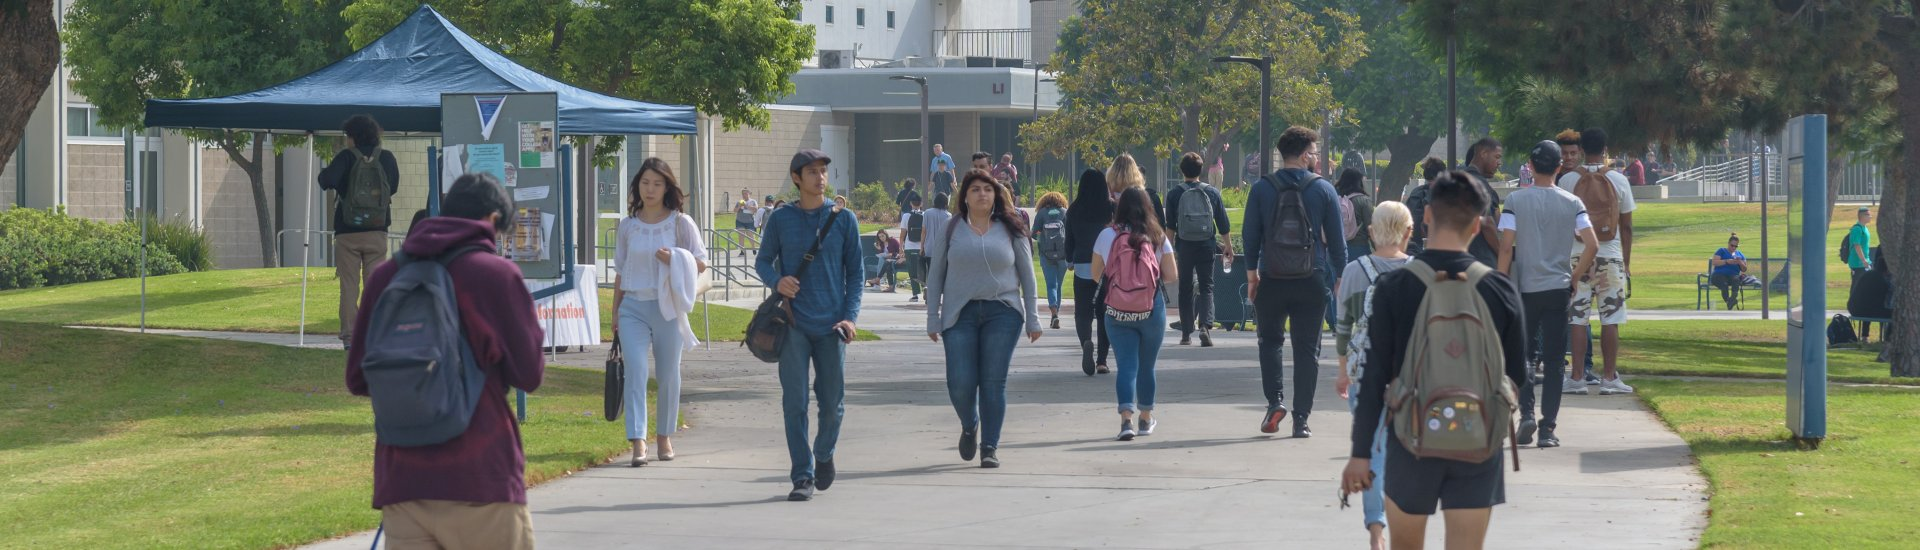 Students walking toward Student Services Buridlig from the Administration Building